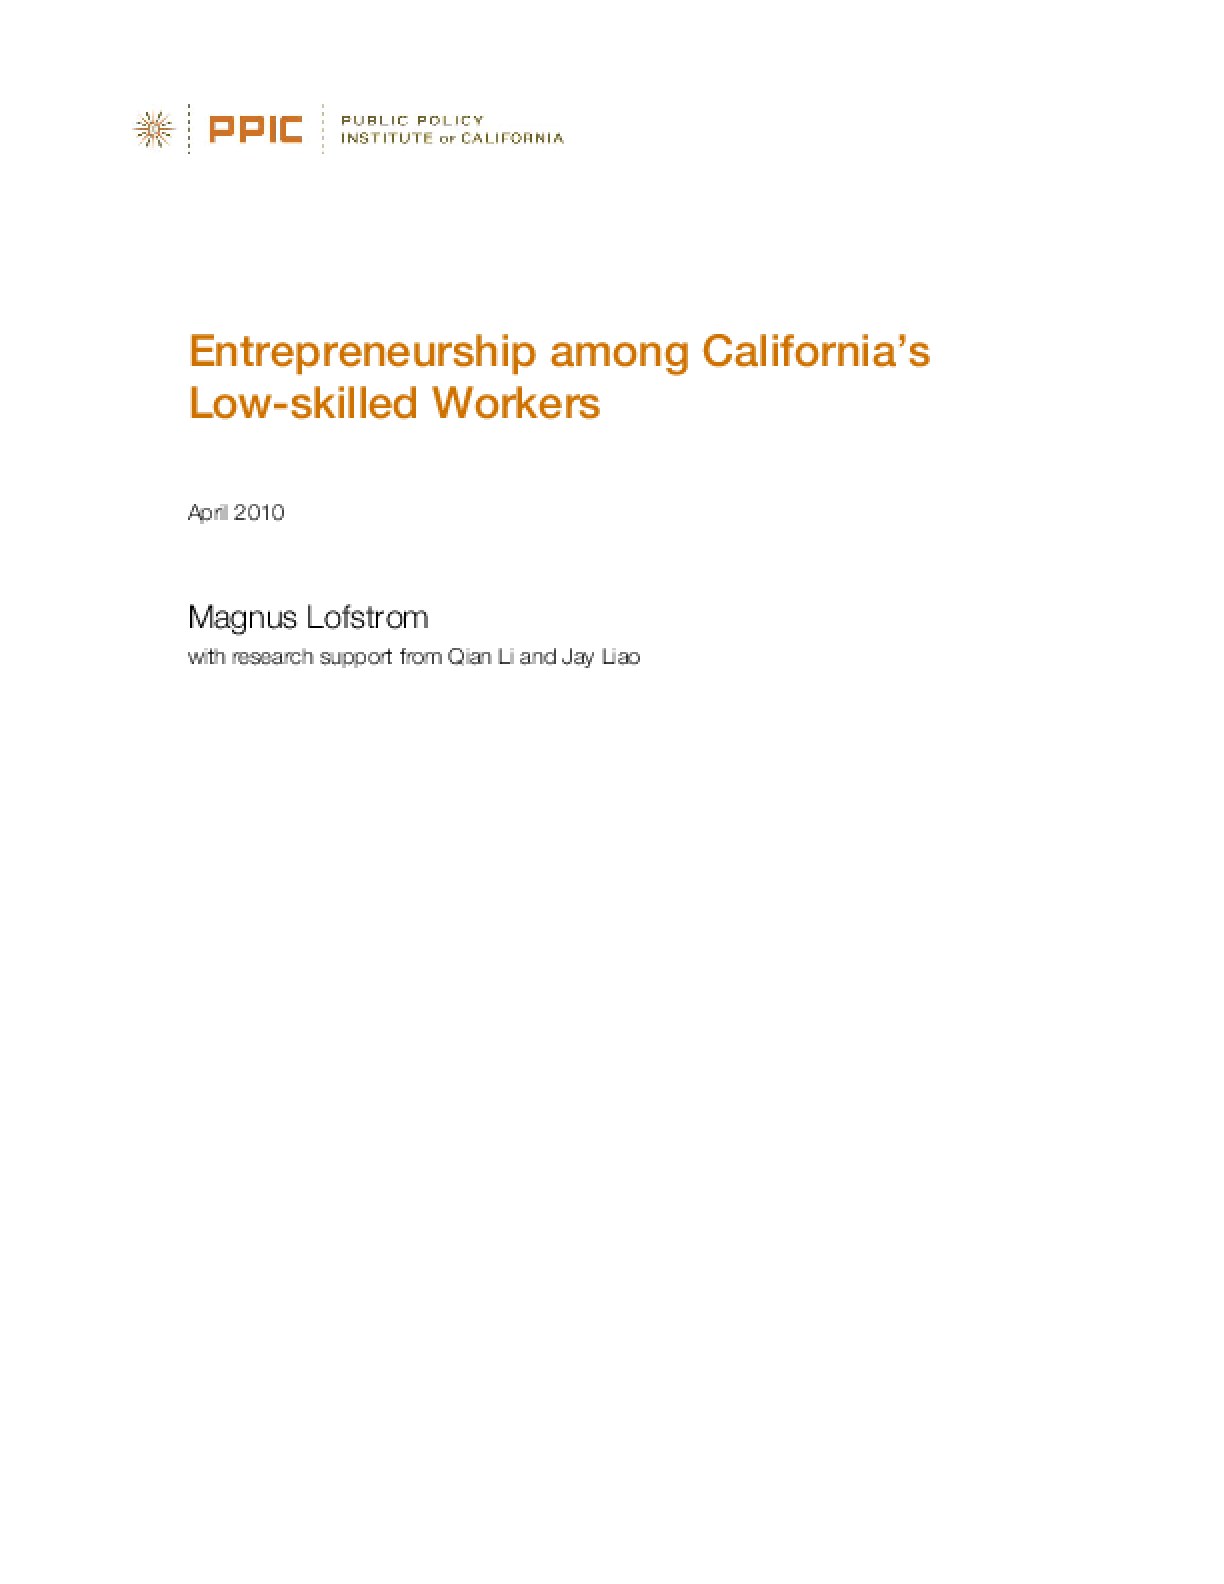 Entrepreneurship Among California's Low-Skilled Workers